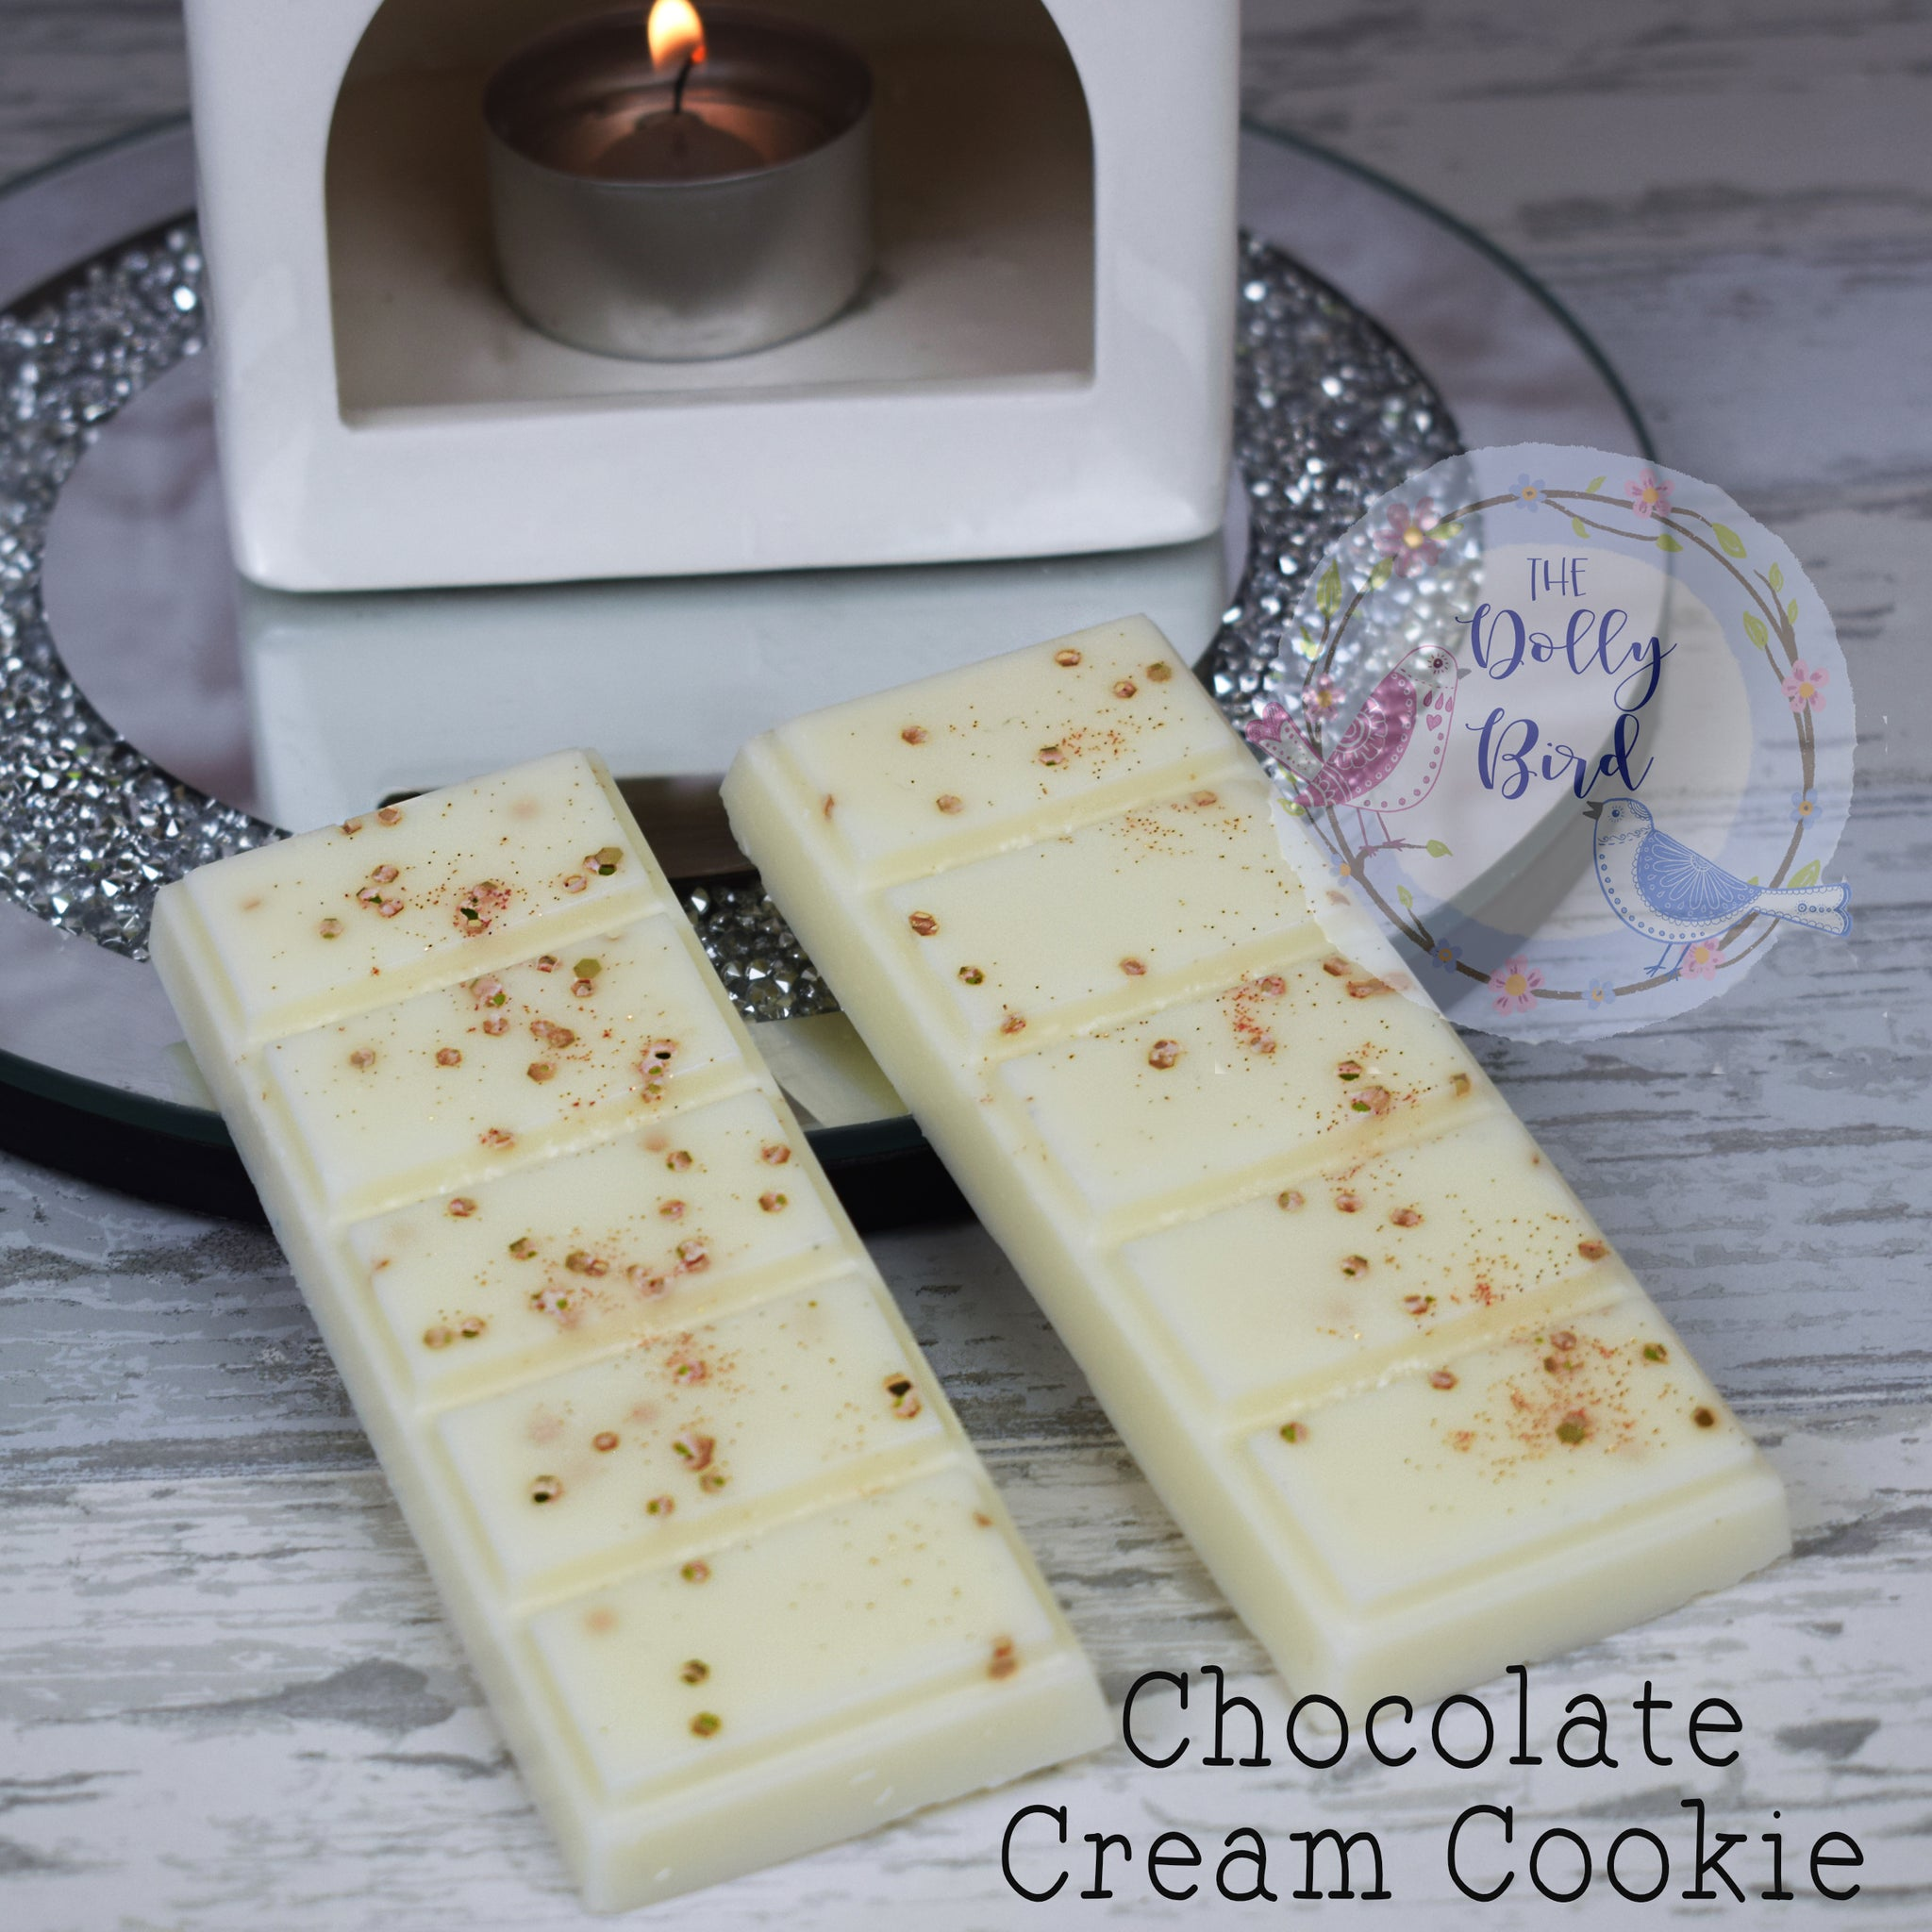 Chocolate Cream Cookie Wax Melt Snap Bar, Chocolate Cookie Scent Wax Melts, Soy Wax Melts, Bakery Scented Wax Melts, Sweet Food Wax Melts